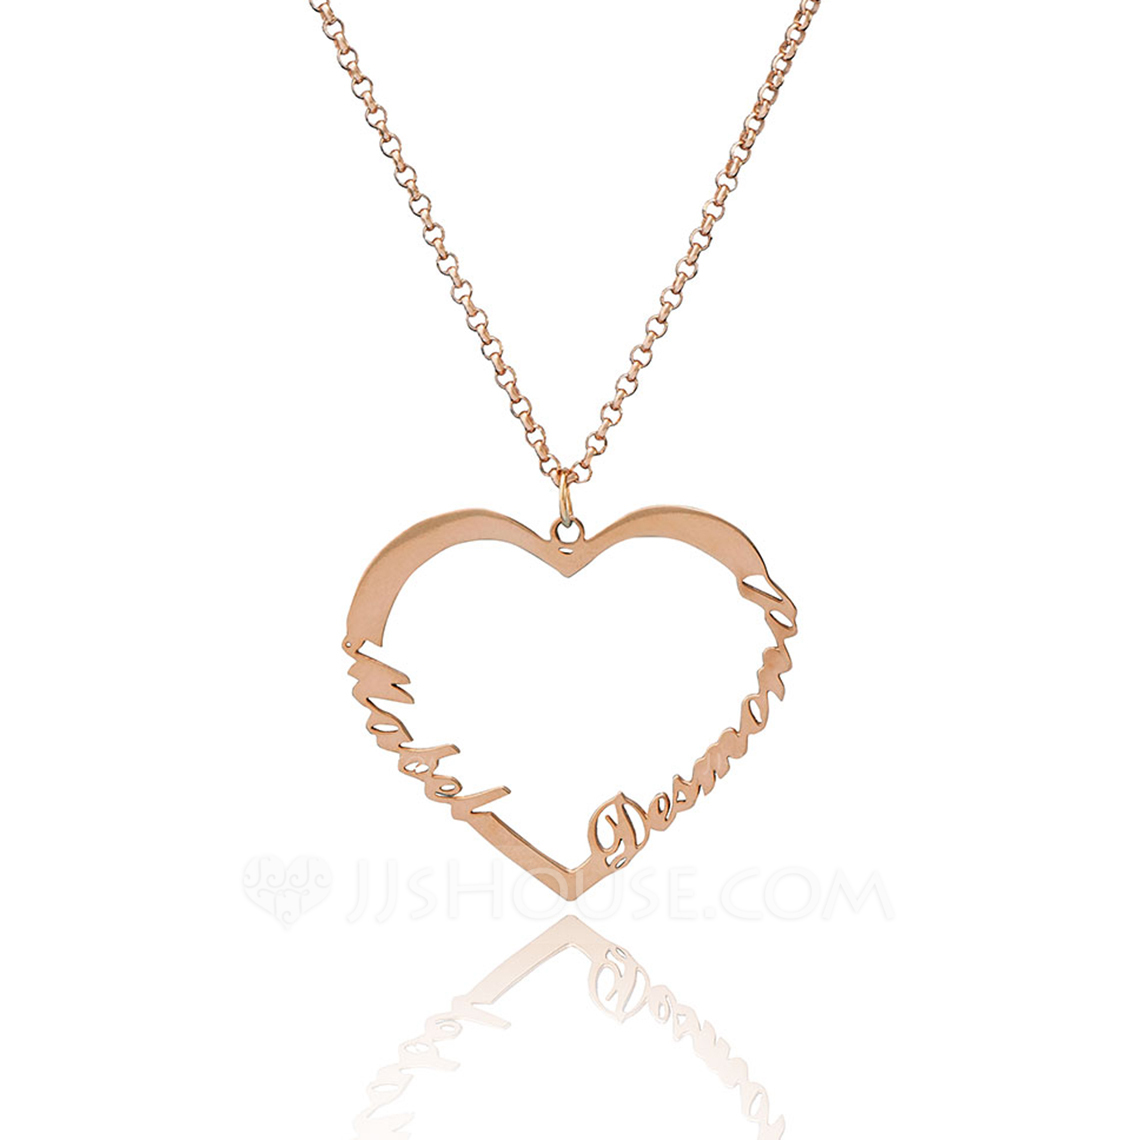 Custom 18k Rose Gold Plated Silver Heart Two Name Necklace - Birthday Gifts Mother's Day Gifts